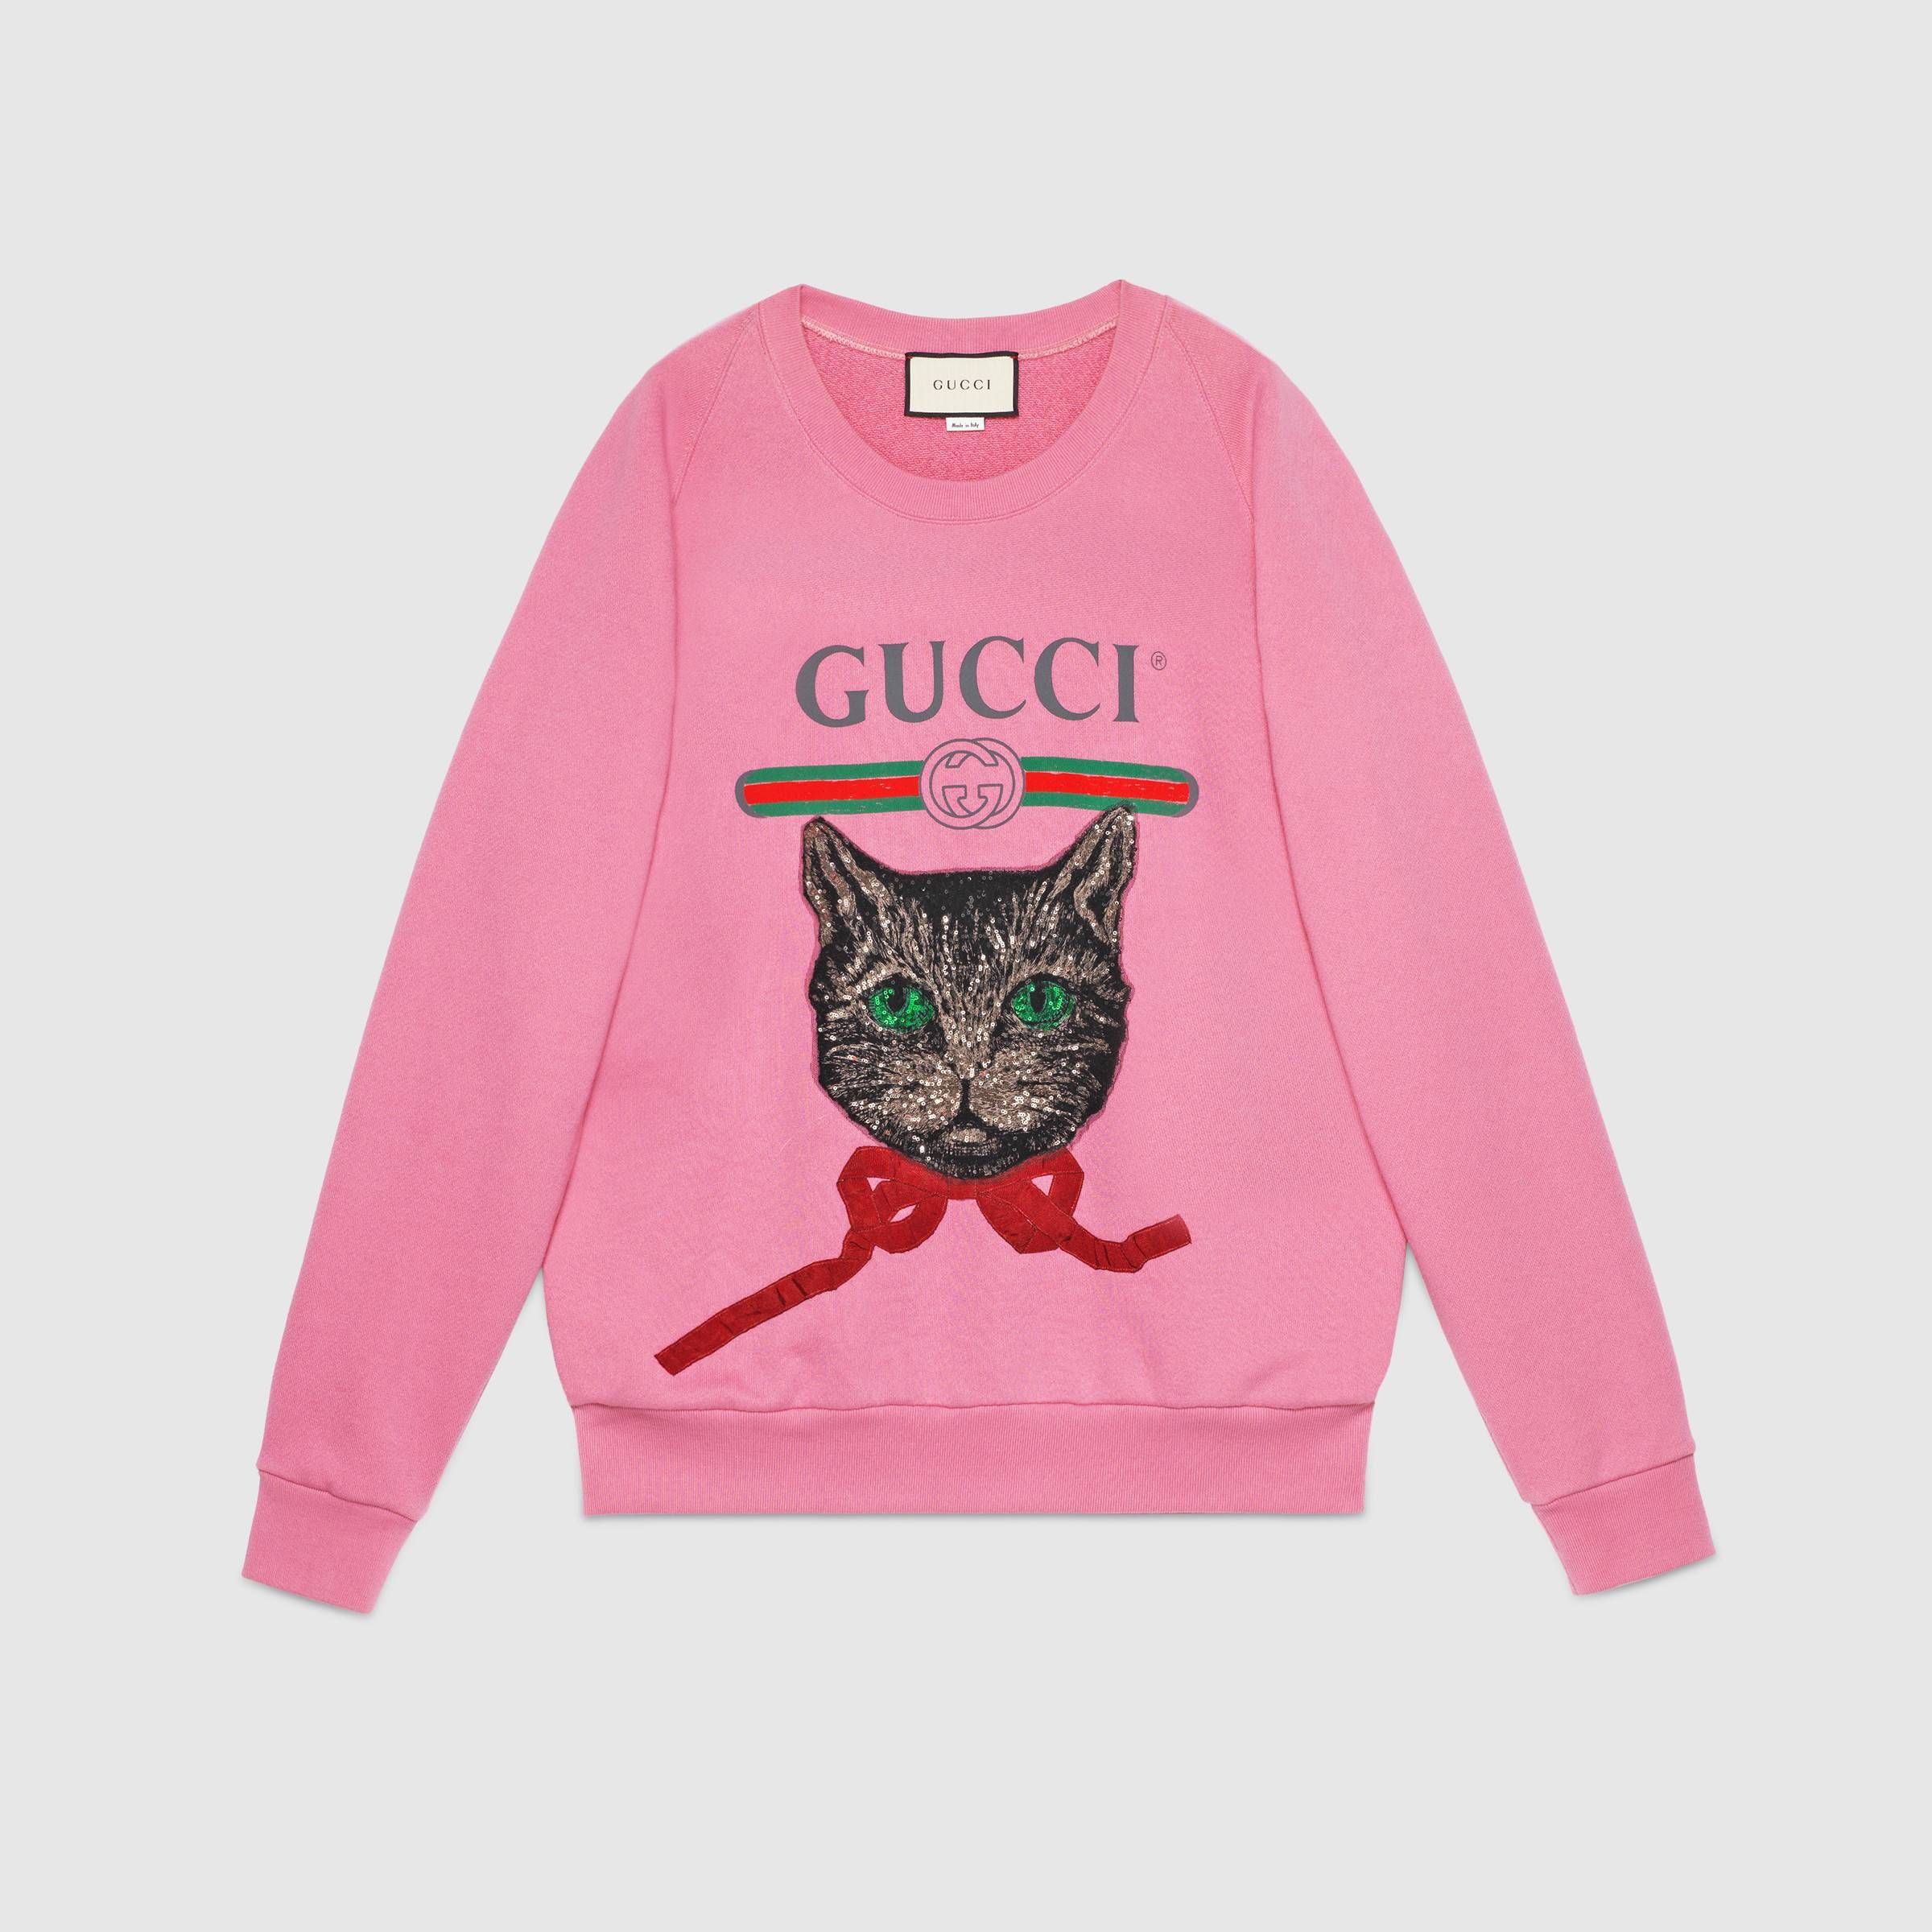 Oversize Sweatshirt With Gucci Logo And Mystic Cat In 2018